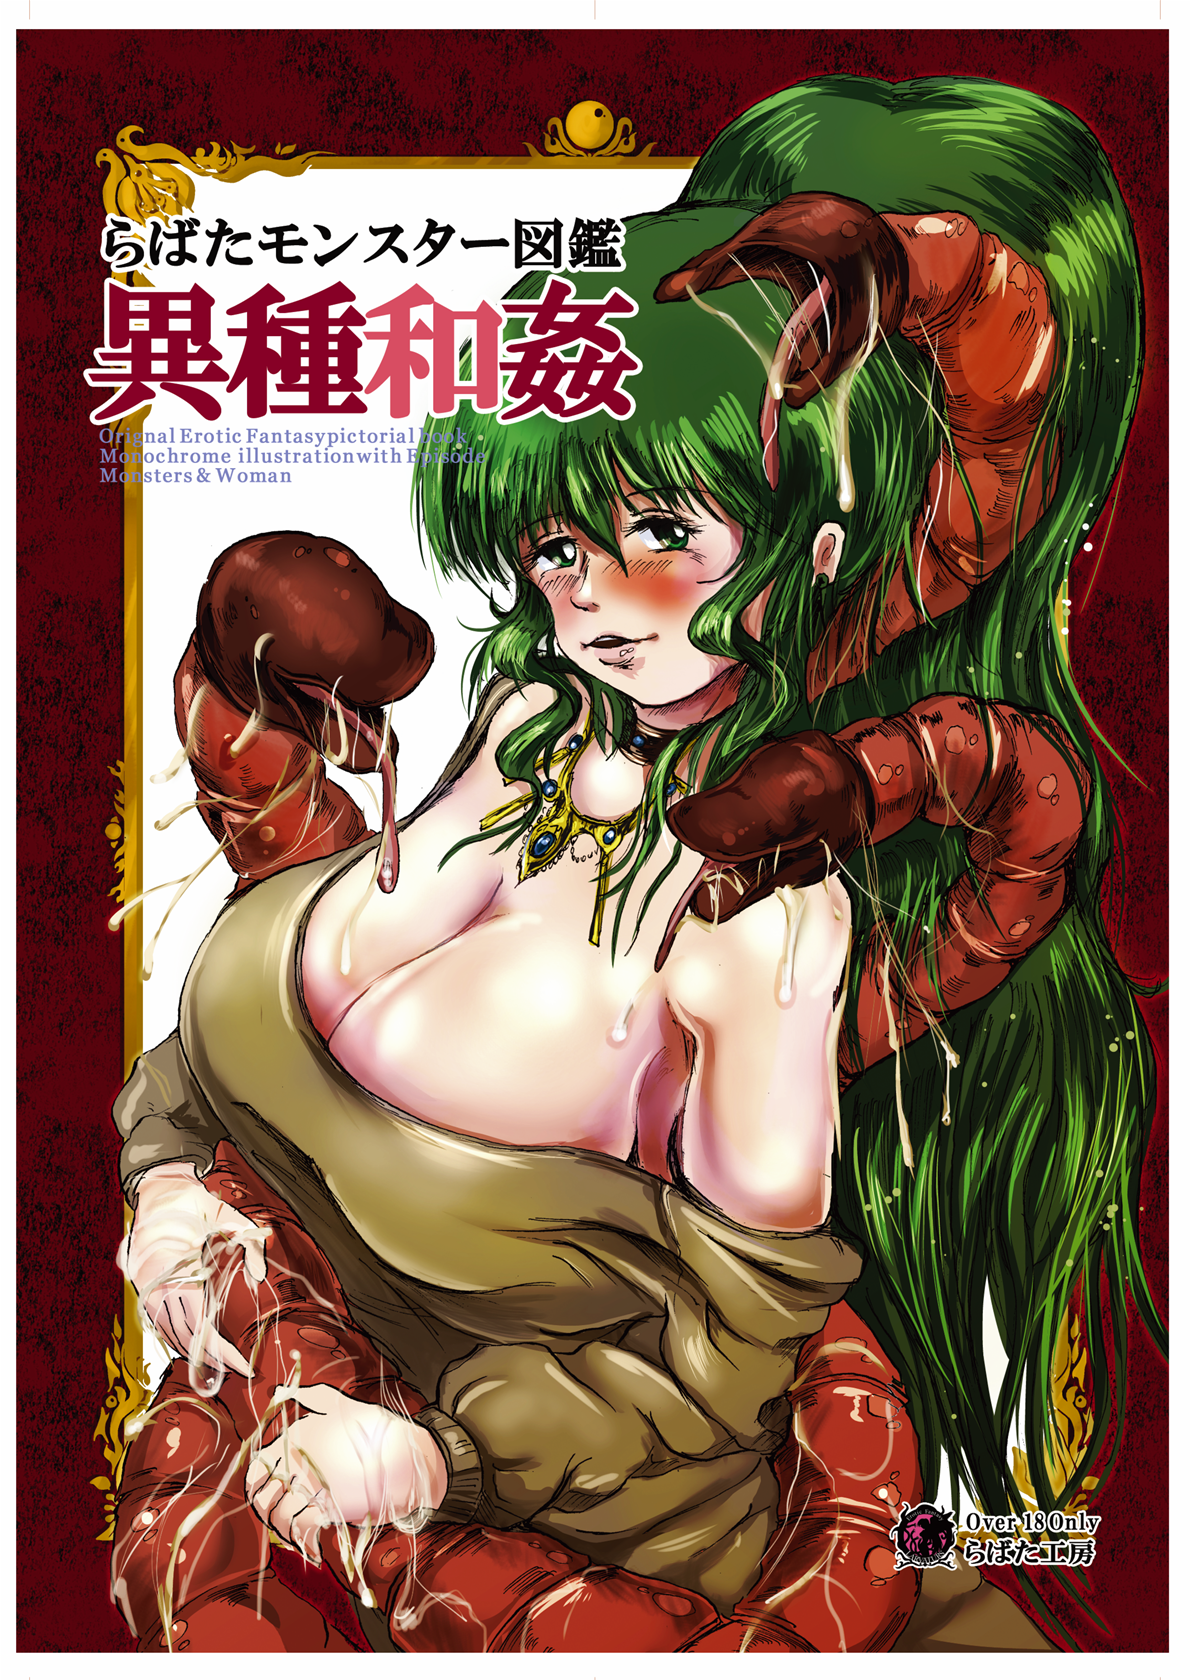 Erotic fantasy and hentai art pron picture